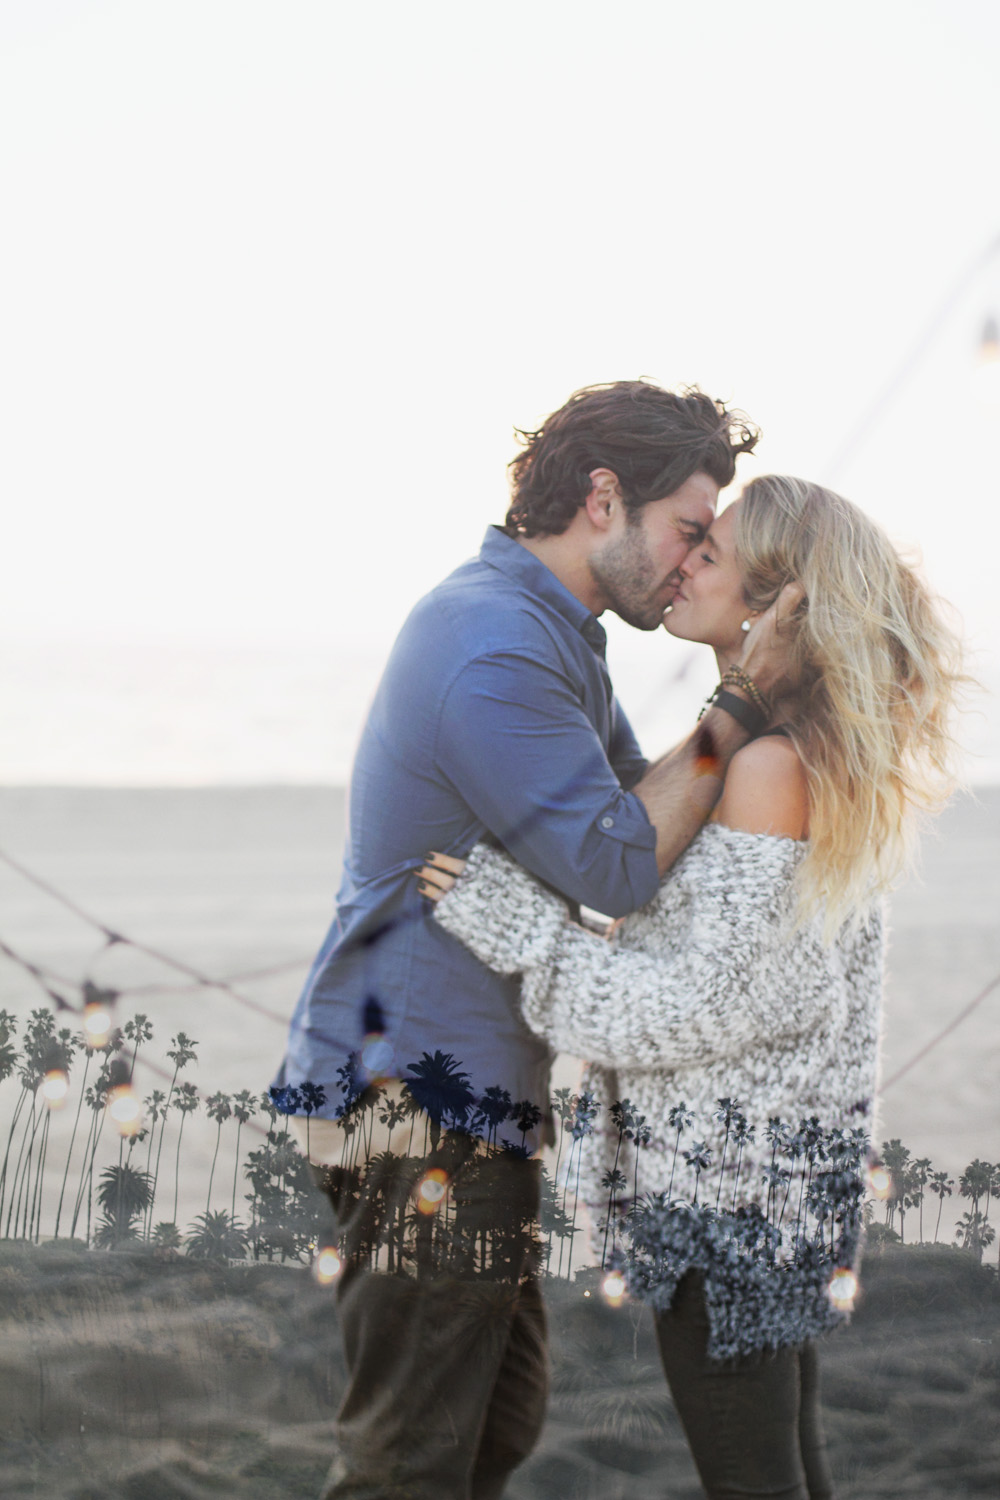 Image 8 of Maria and Guibson's Beautiful Proposal in Santa Monica